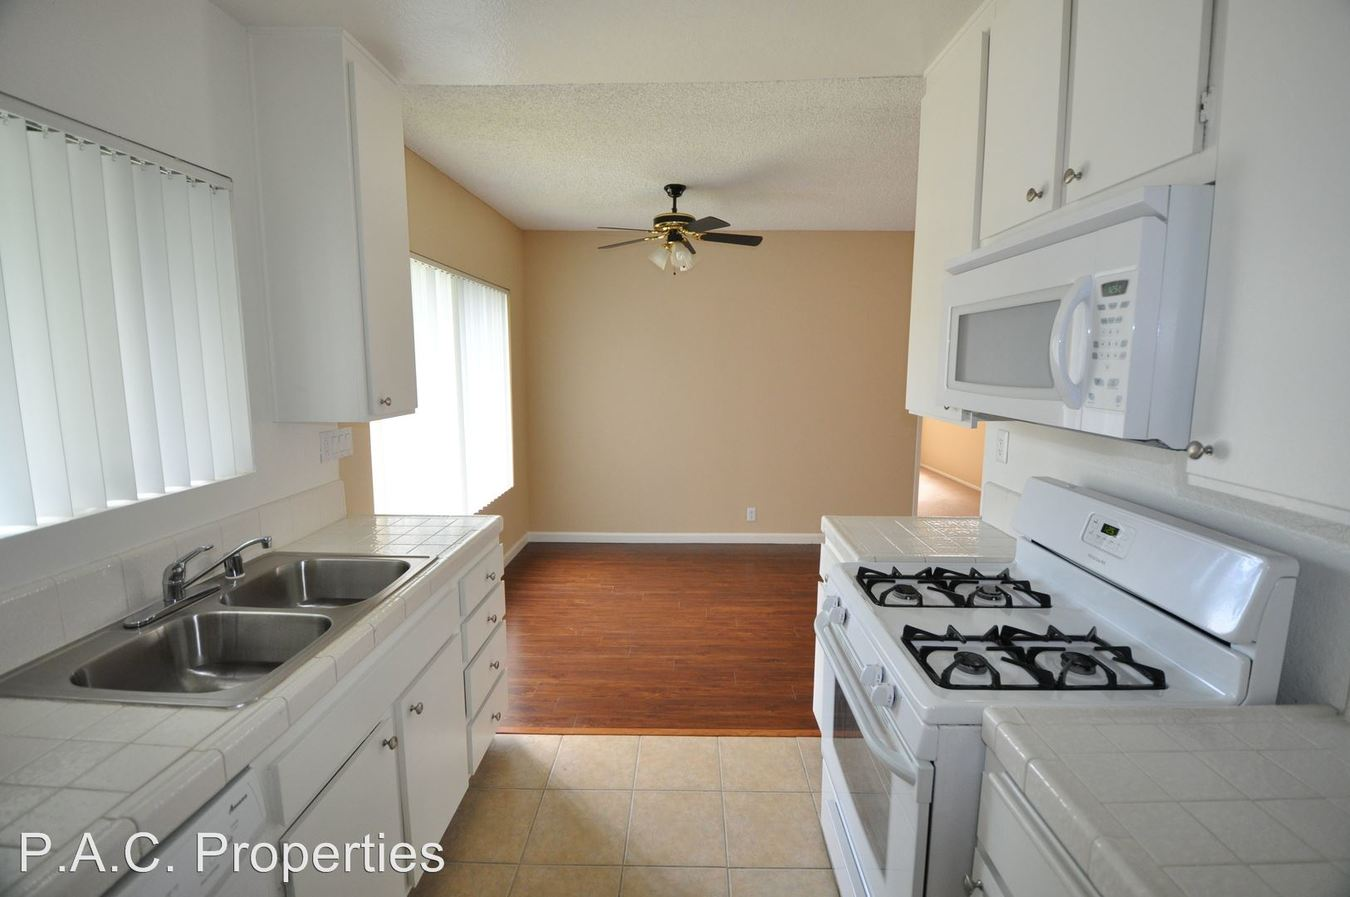 3 Bedrooms 2 Bathrooms Apartment for rent at 24411 Newhall Avenue in Newhall, CA